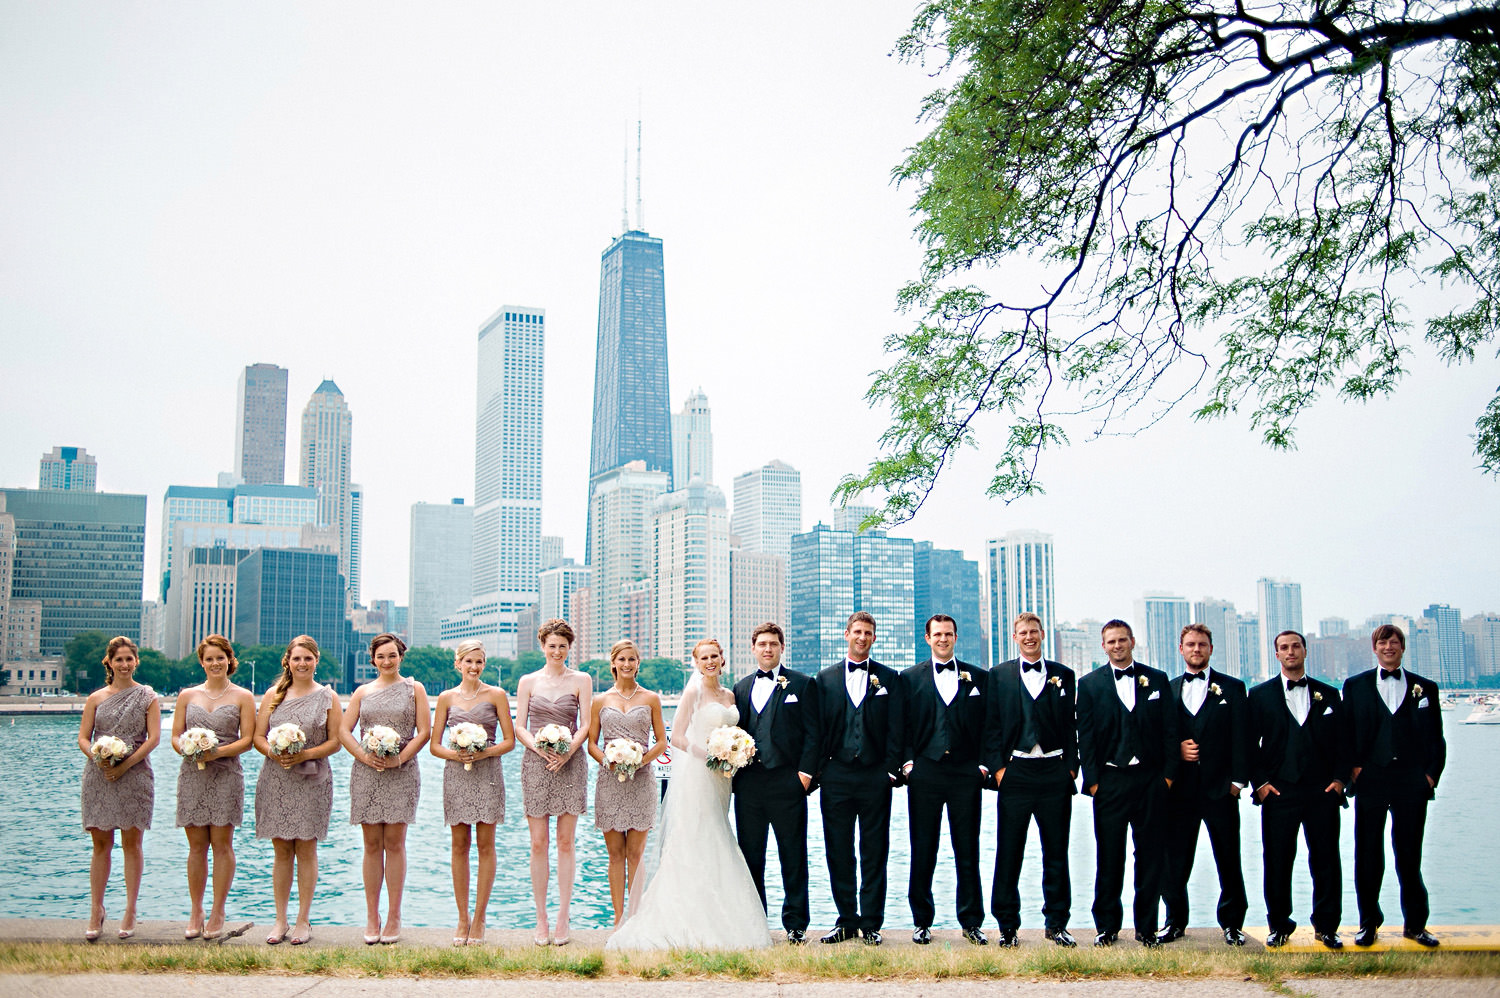 The bridal party poses for a photo in front of the Chicago Skyline.